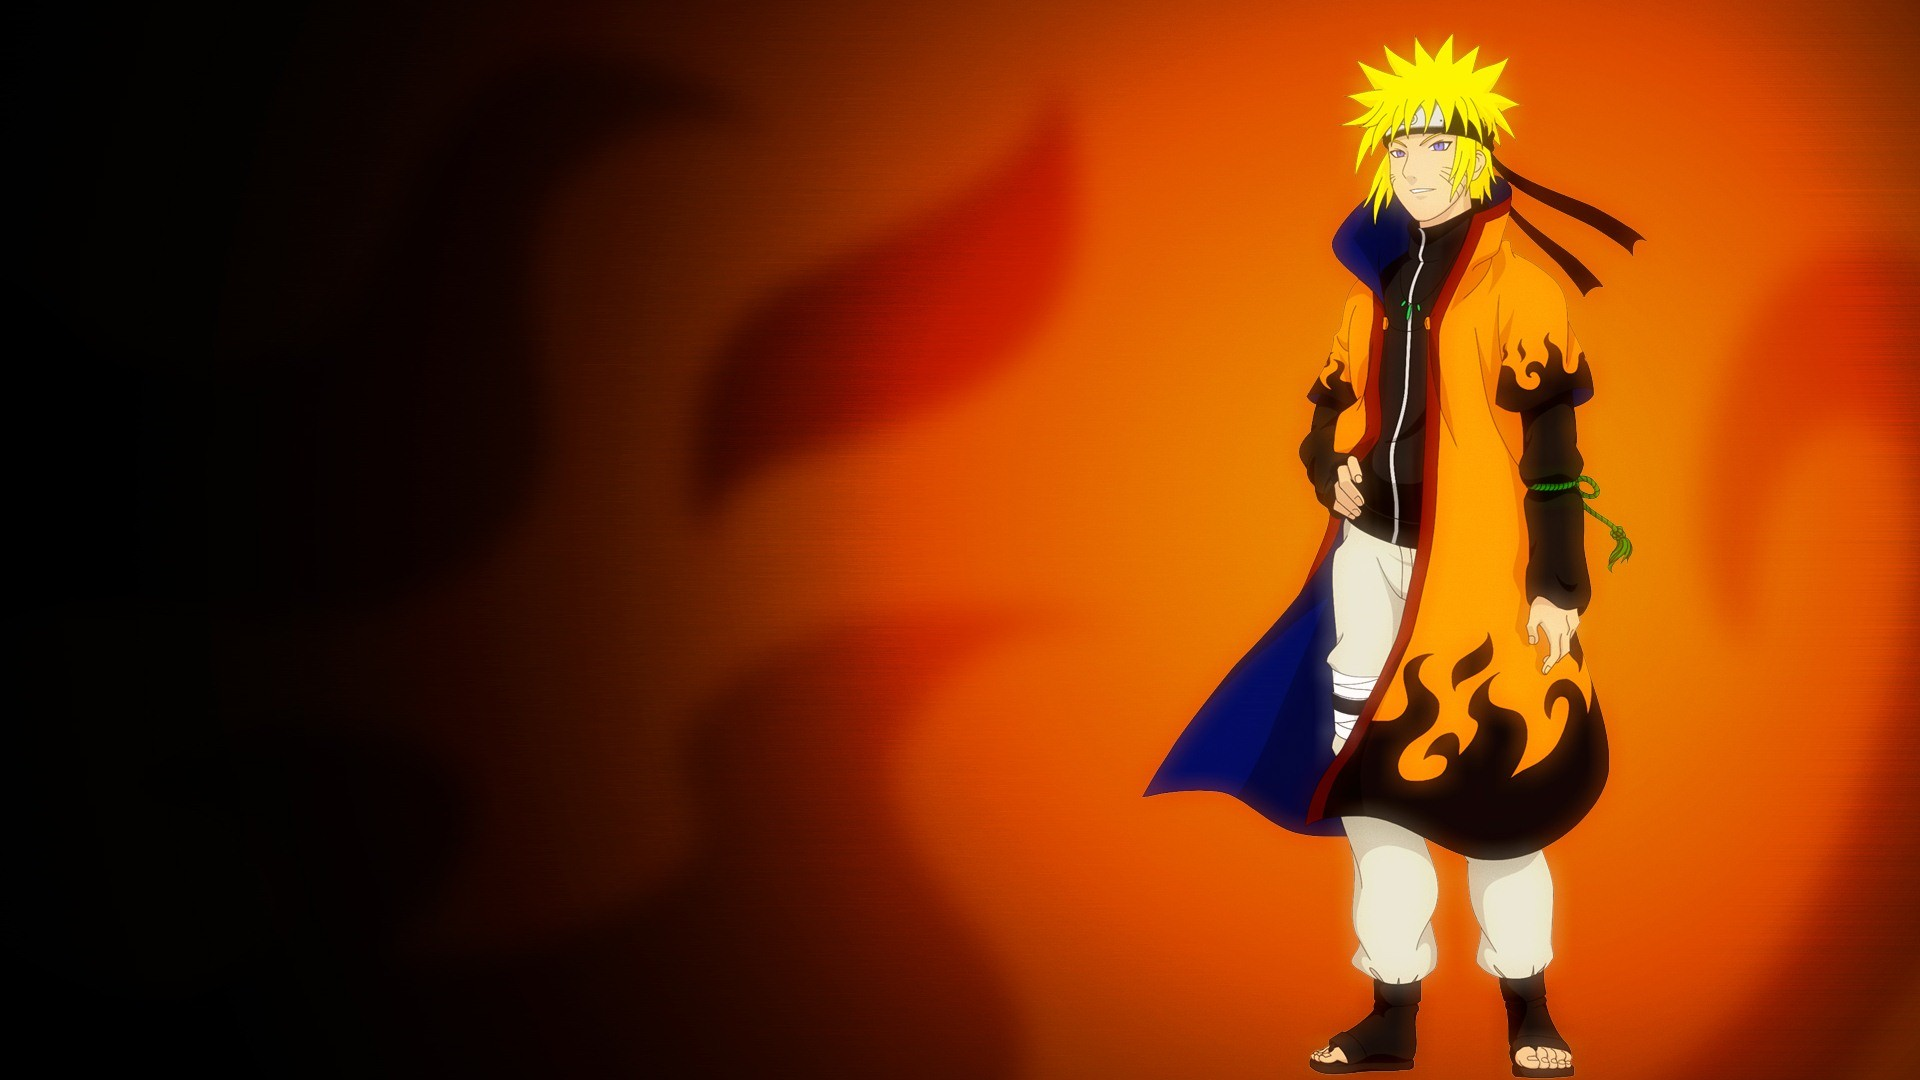 1920x1080 Naruto 2014 HD Wide Wallpaper for Widescreen (63 Wallpapers)